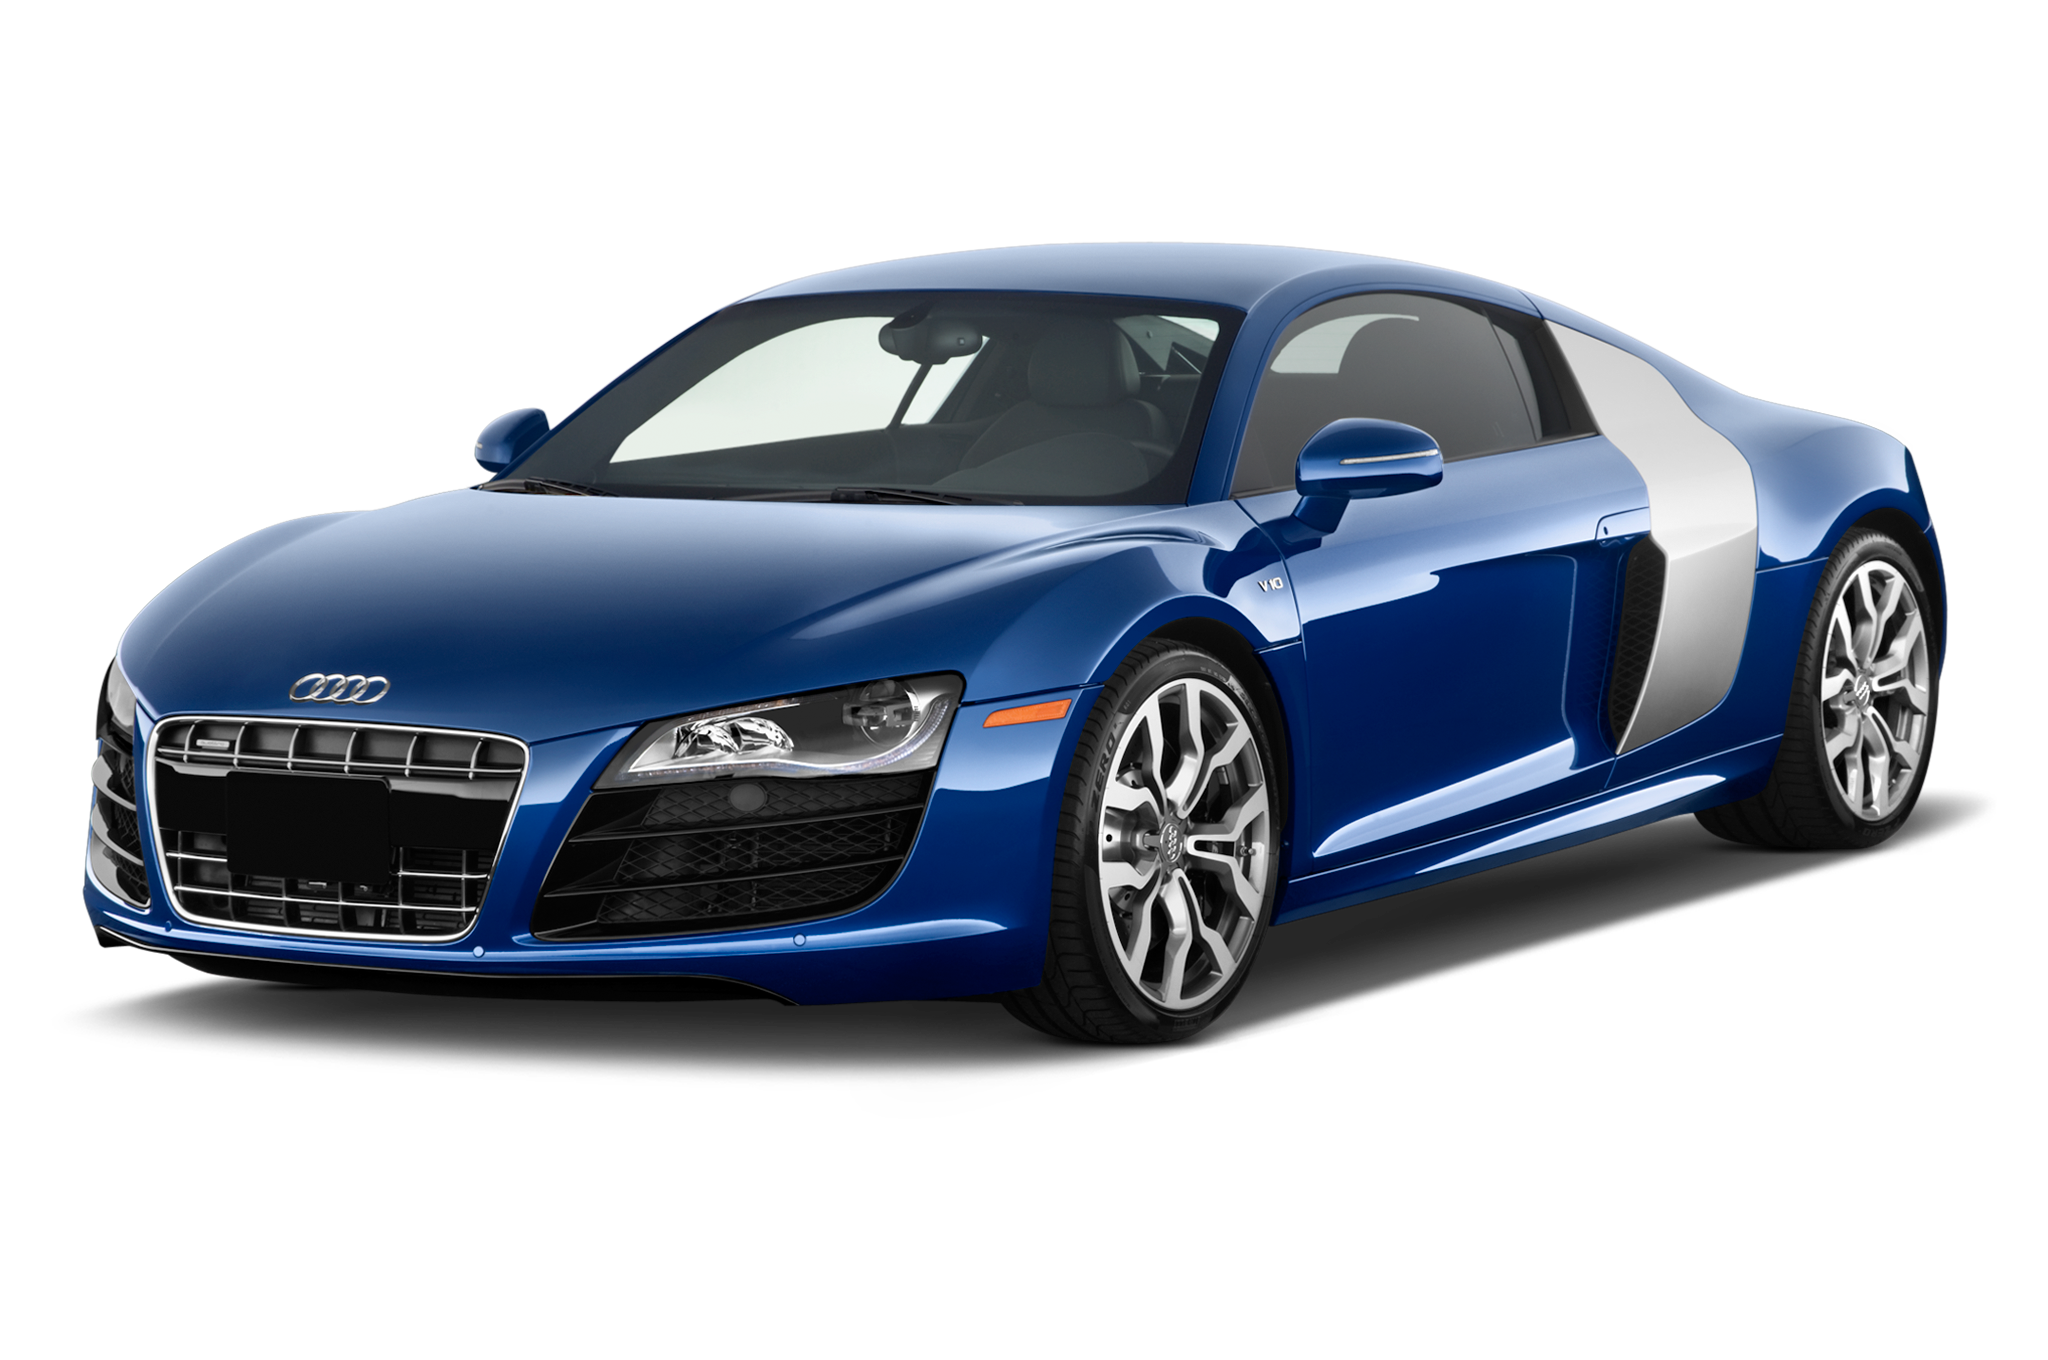 2010 audi r8 v10 audi sport coupe review automobile. Black Bedroom Furniture Sets. Home Design Ideas